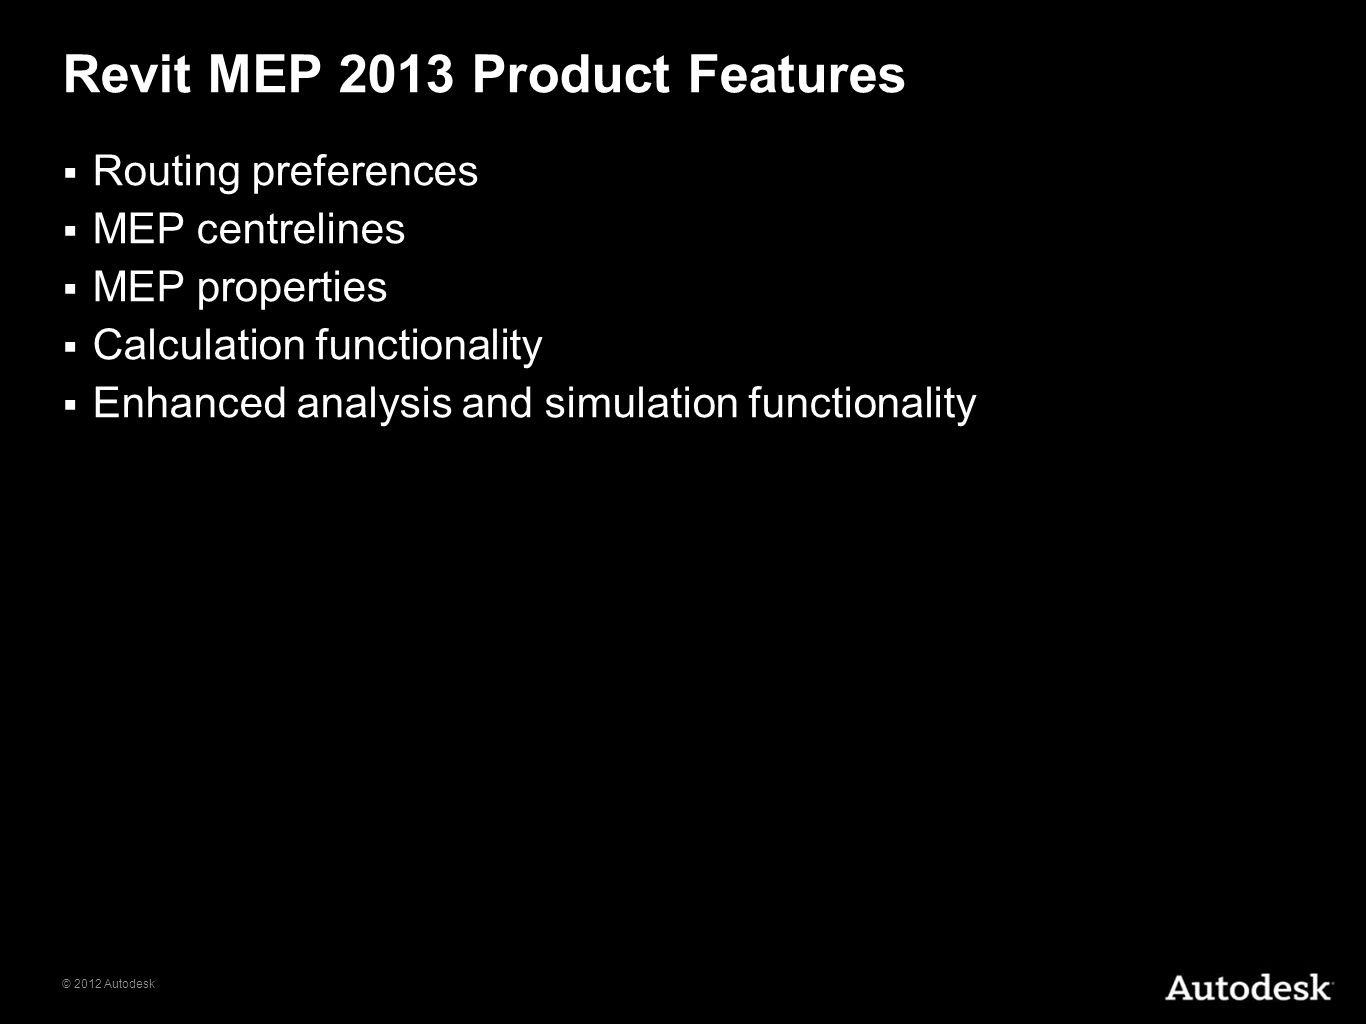 Revit MEP 2013 Product Features